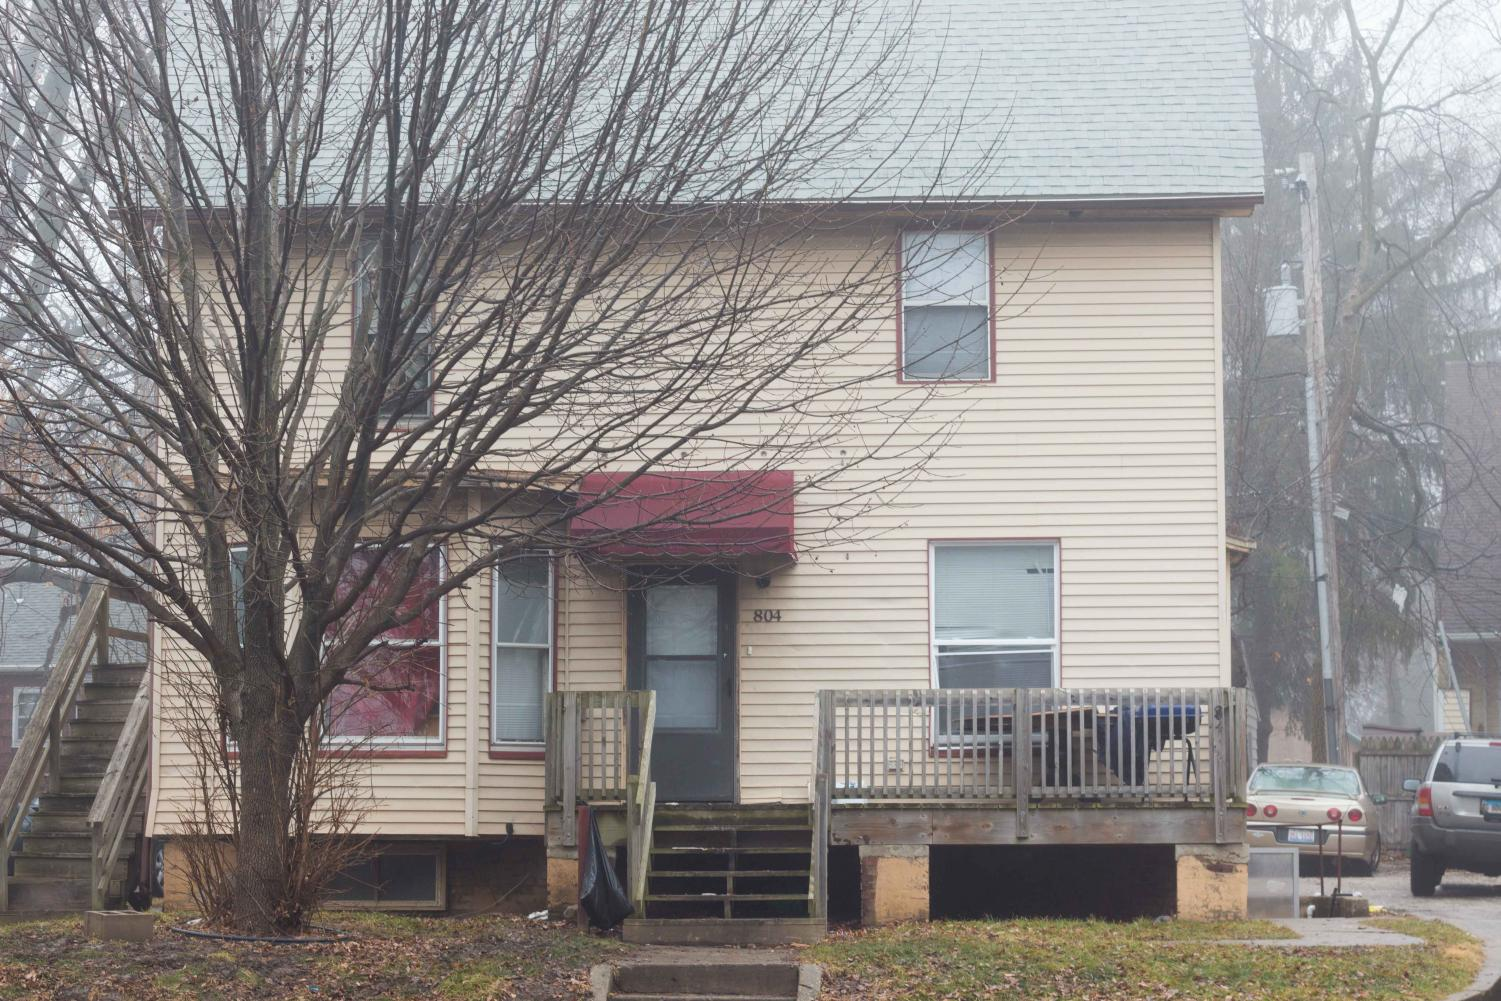 A house on 804 W. Springfield Ave. A shooting occurred at this address during the early in the morning on Jan 20.